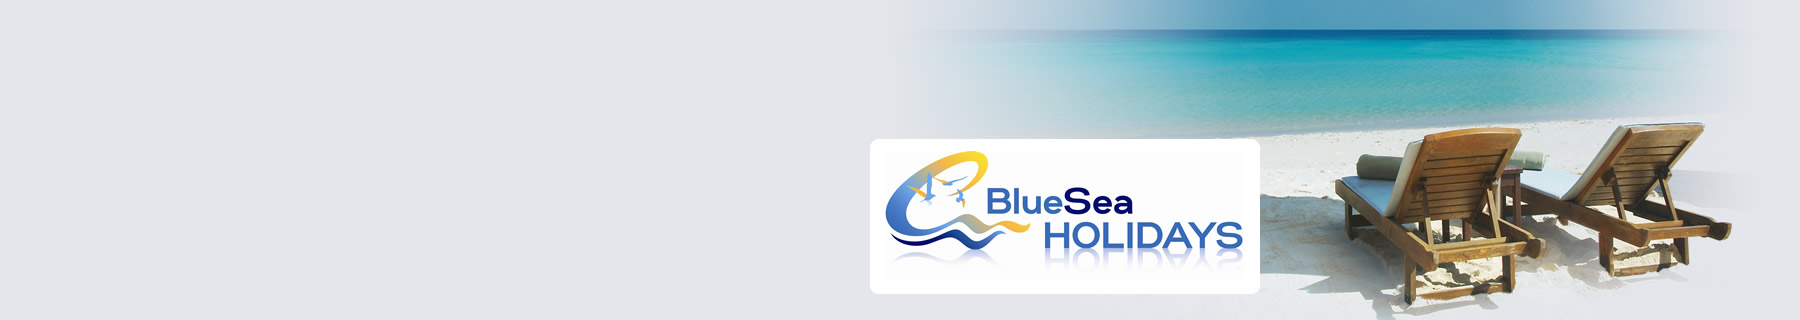 Blue Sea Holidays Contact Centre connects callers with sales agents in multiple locations